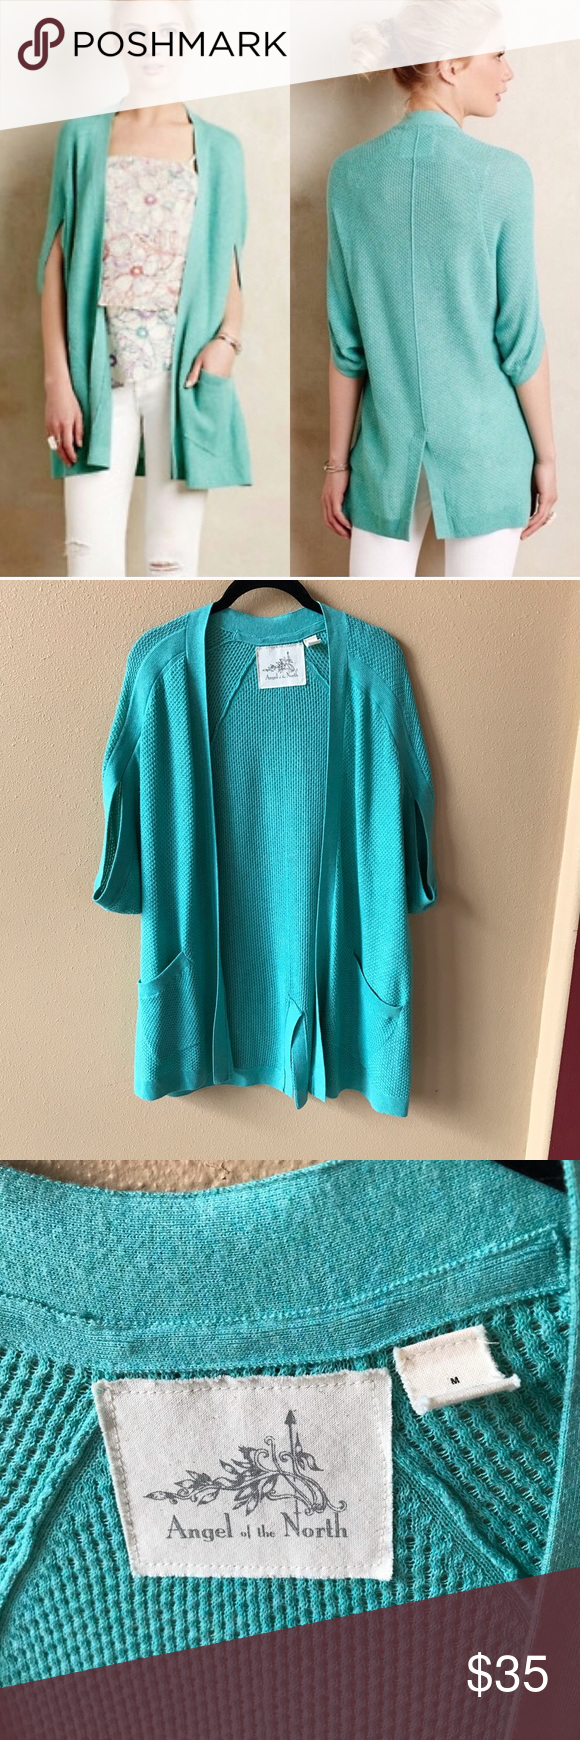 Angel of the North Chrysalis aqua cardigan sweater Size Medium  Very Good condition   Item 0509 Anthropologie Sweaters Cardigans